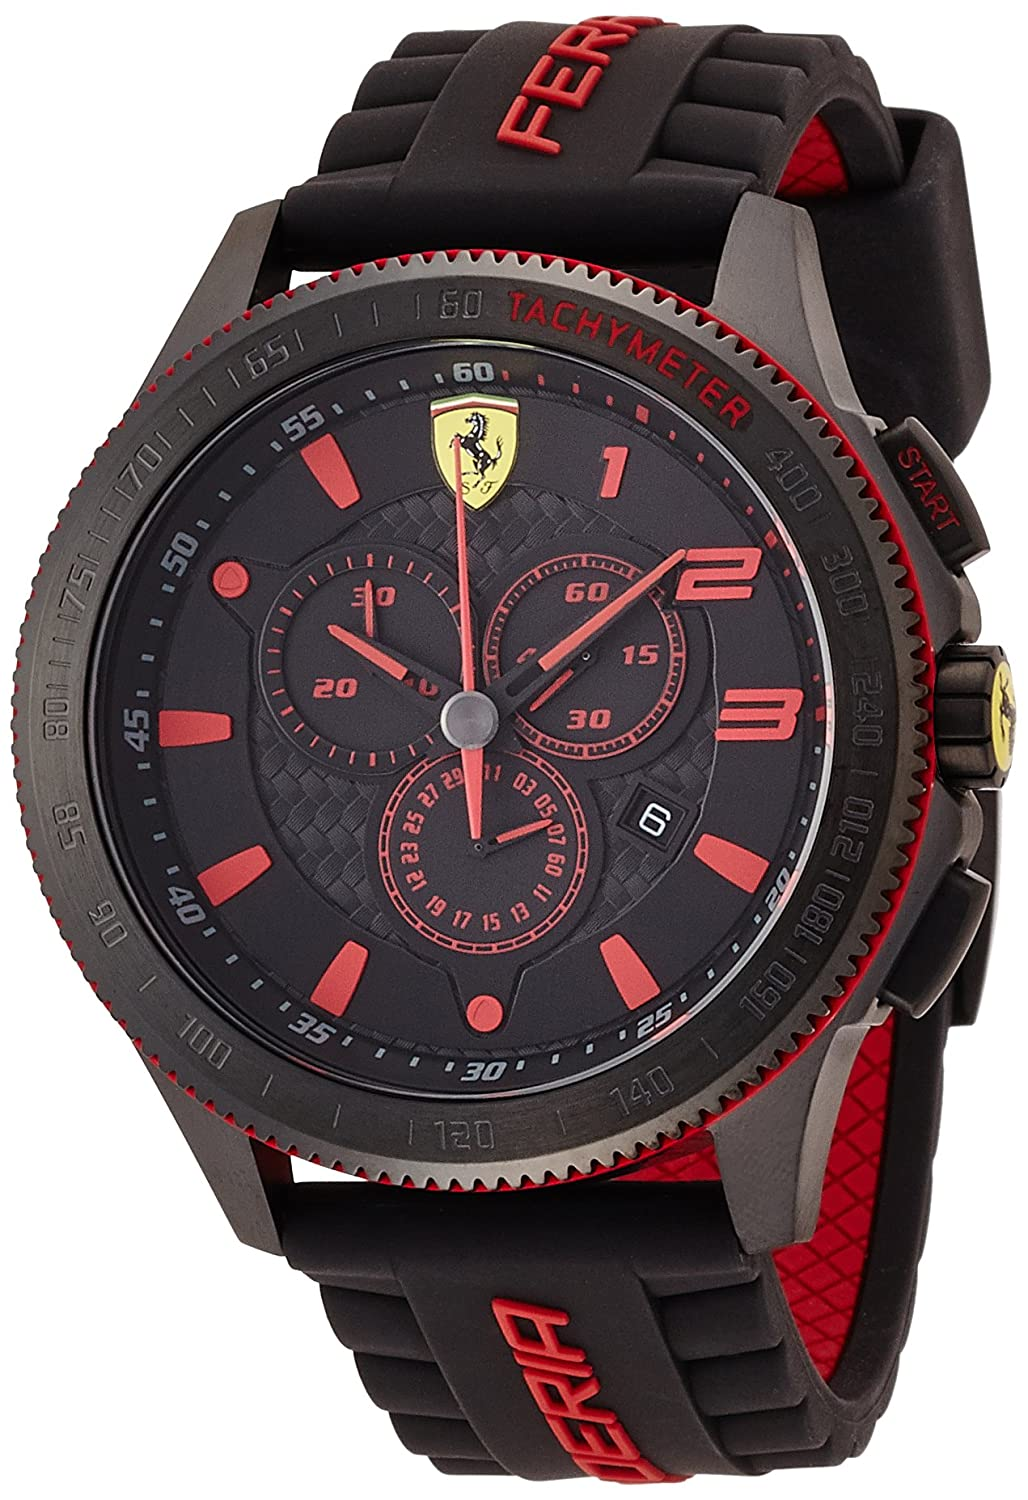 img meitu casio australia digita ga red watches black x products express mens watch free babyg shock shipping g